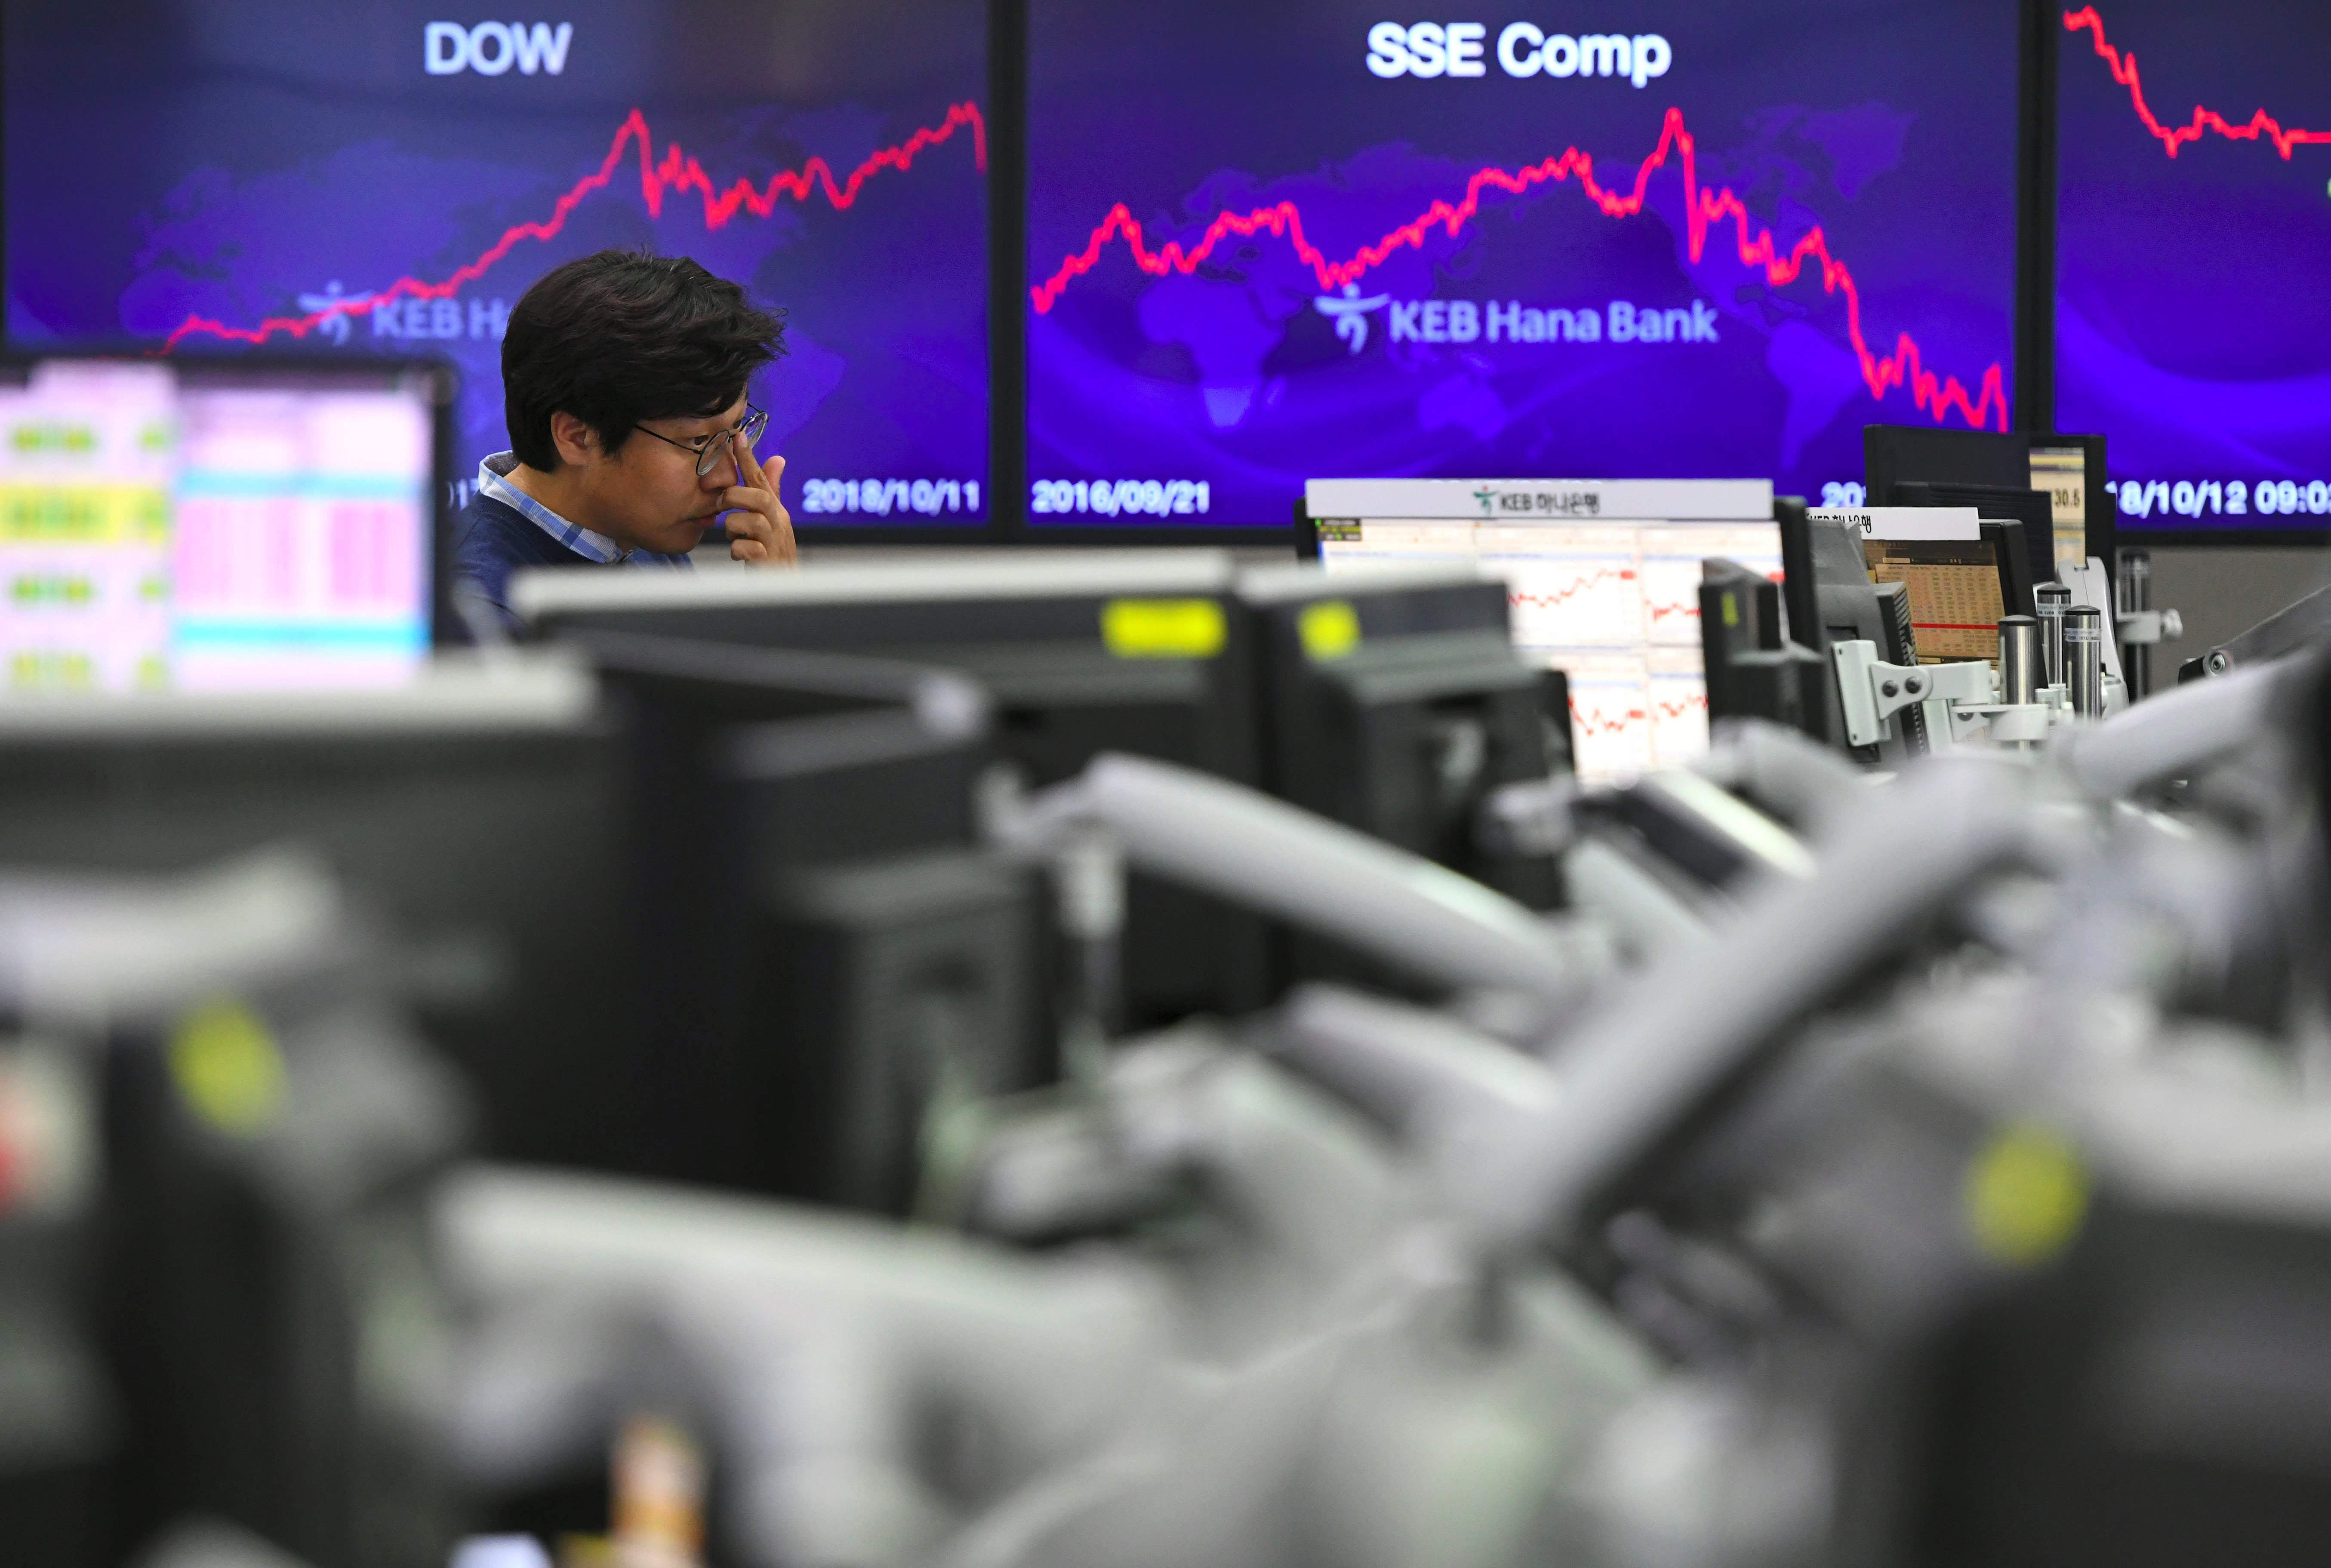 Investors withdraw £1.6bn from equities in August